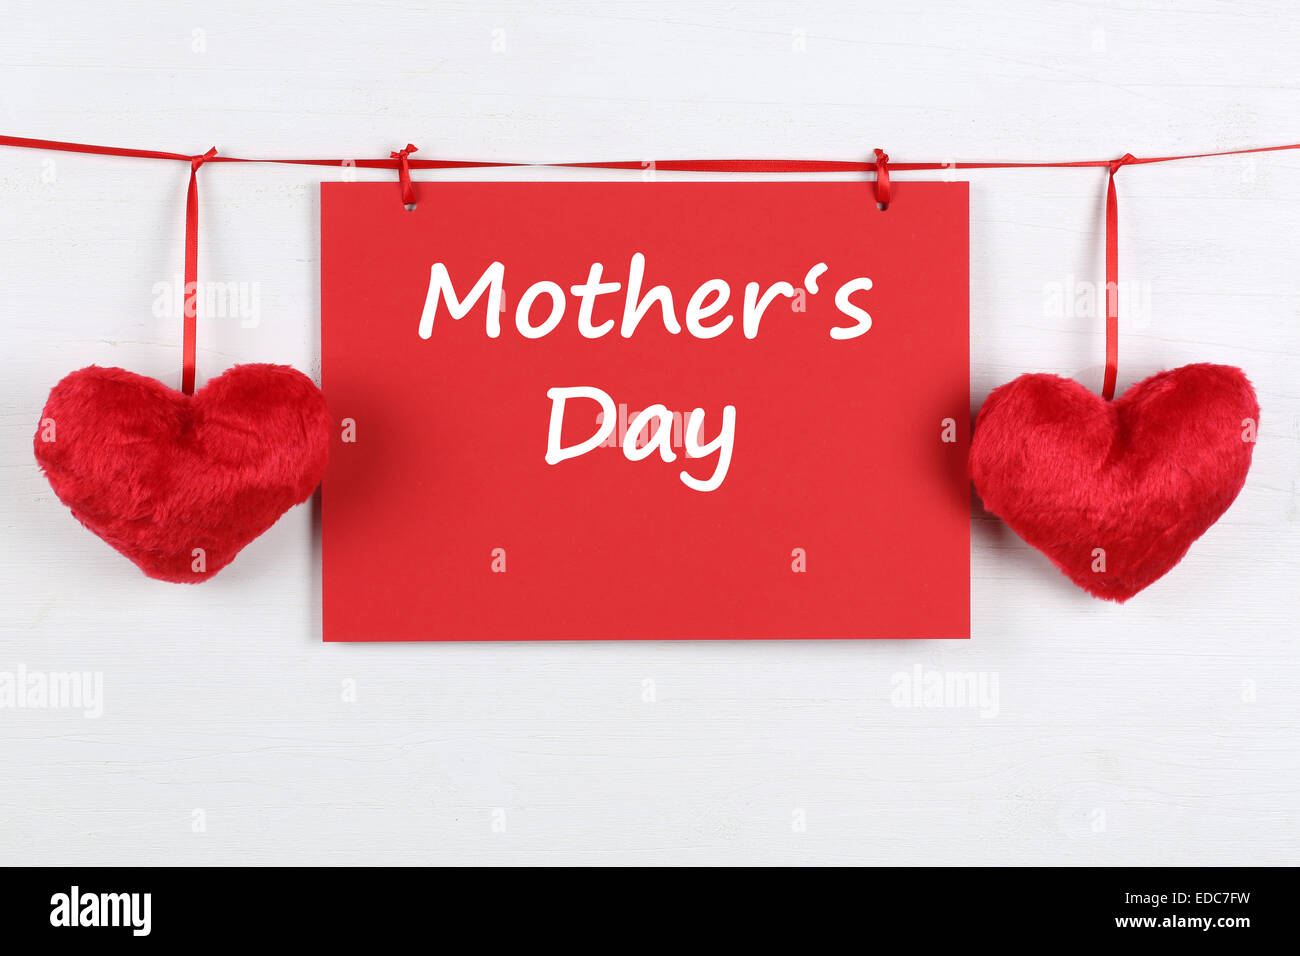 Greeting card on Mother's day with copyspace for your own text and two hearts - Stock Image